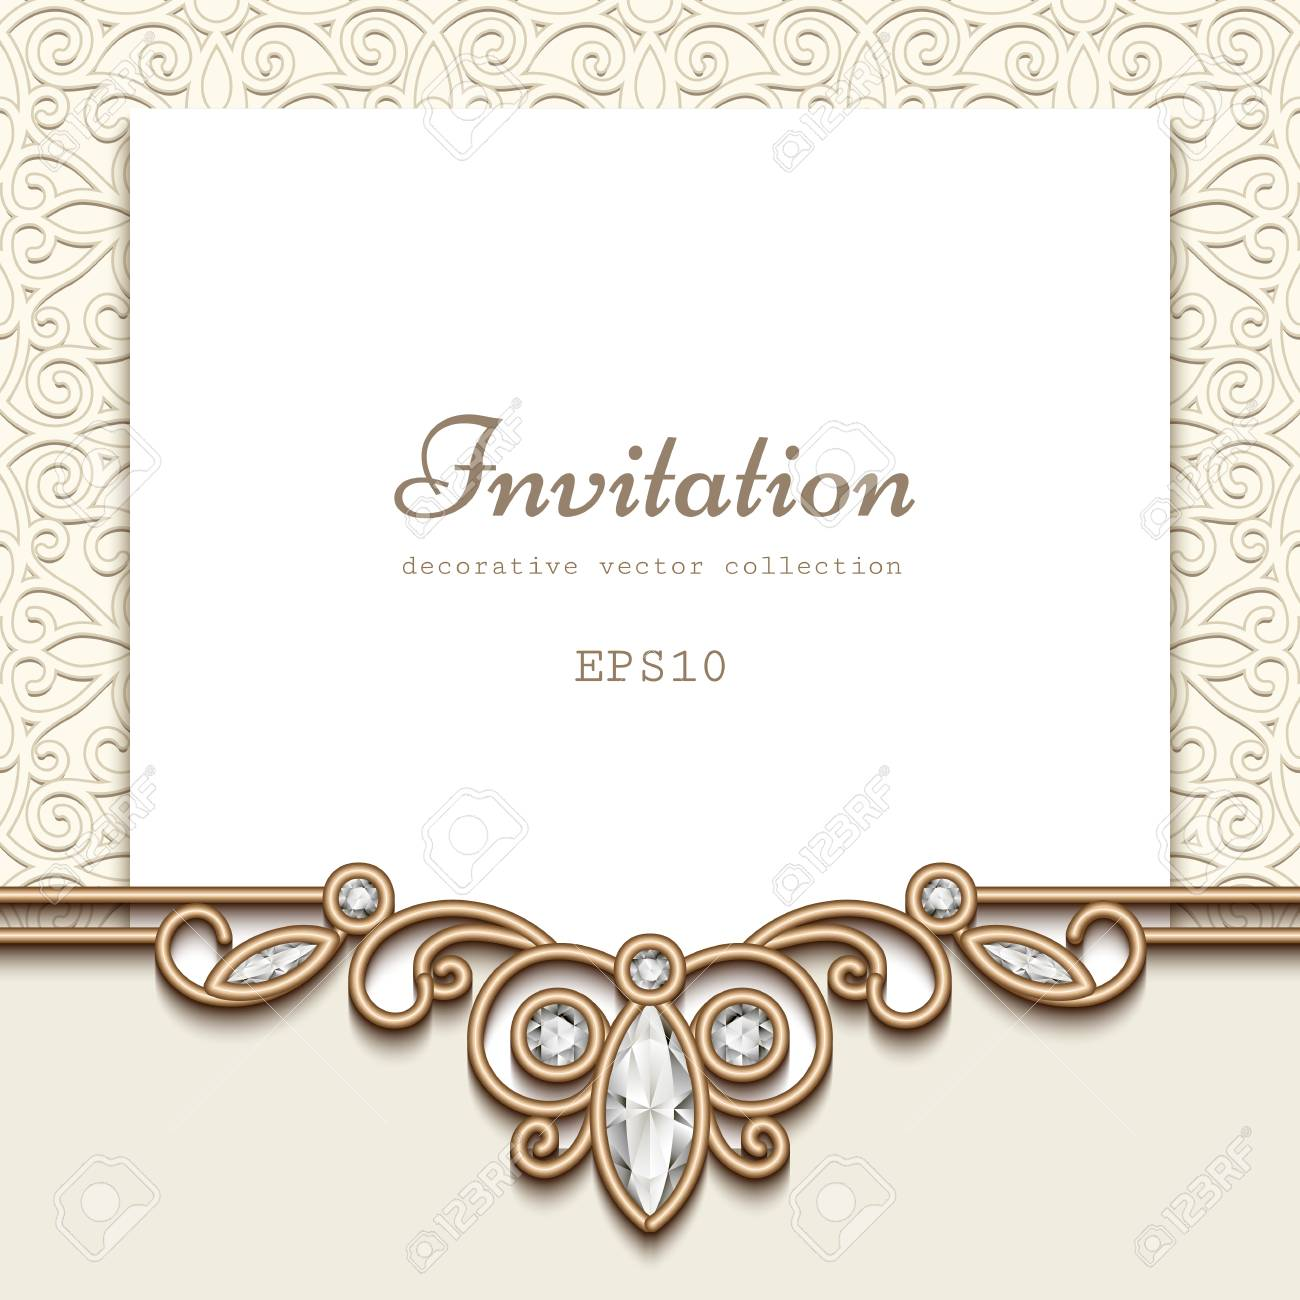 Elegant wedding invitation with jewelry diamond decoration vintage elegant wedding invitation with jewelry diamond decoration vintage save the date or greeting card template junglespirit Images